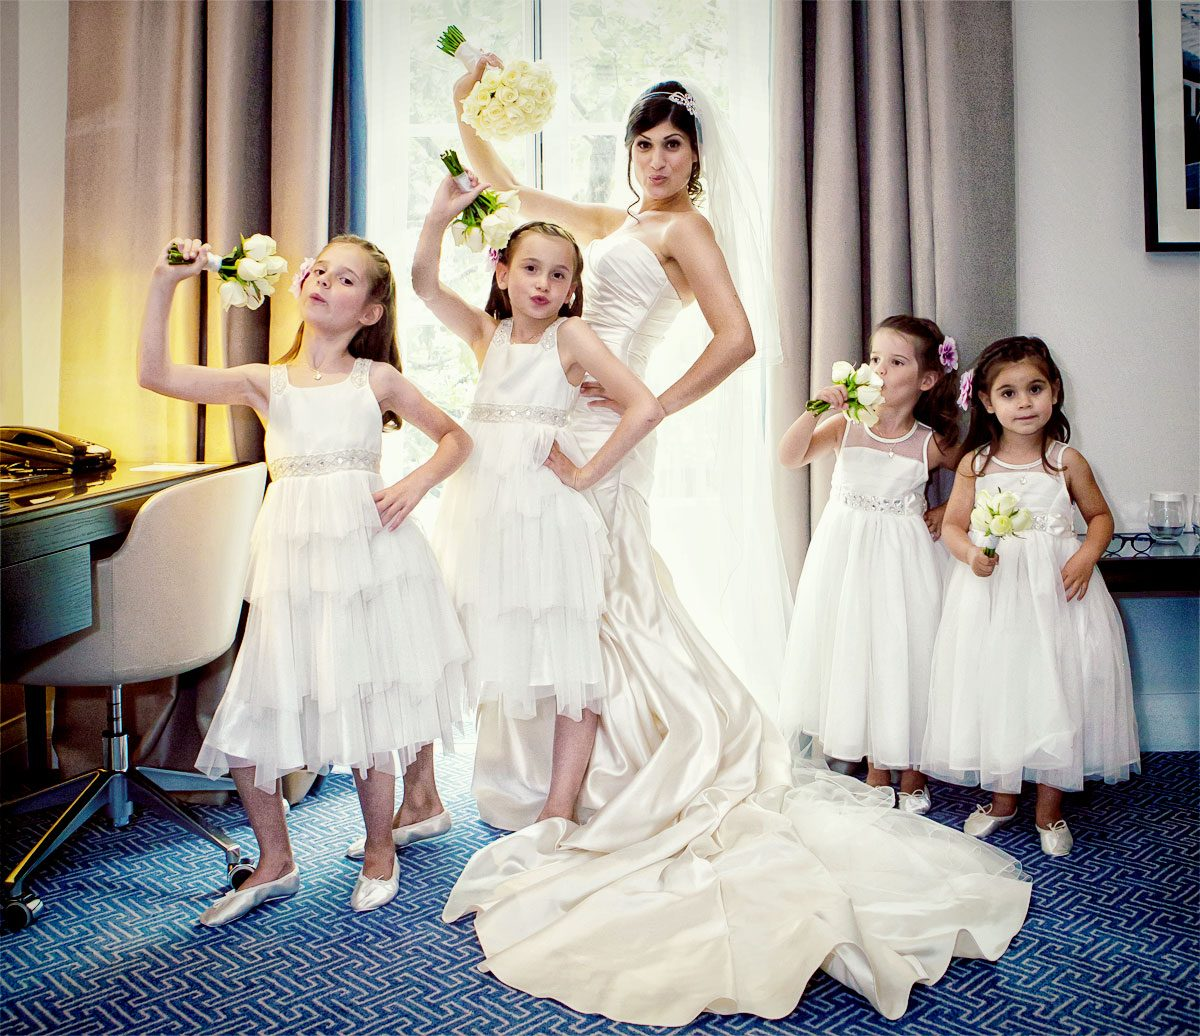 Bride and flower girls pose at Waldorf Hilton Hotel wedding